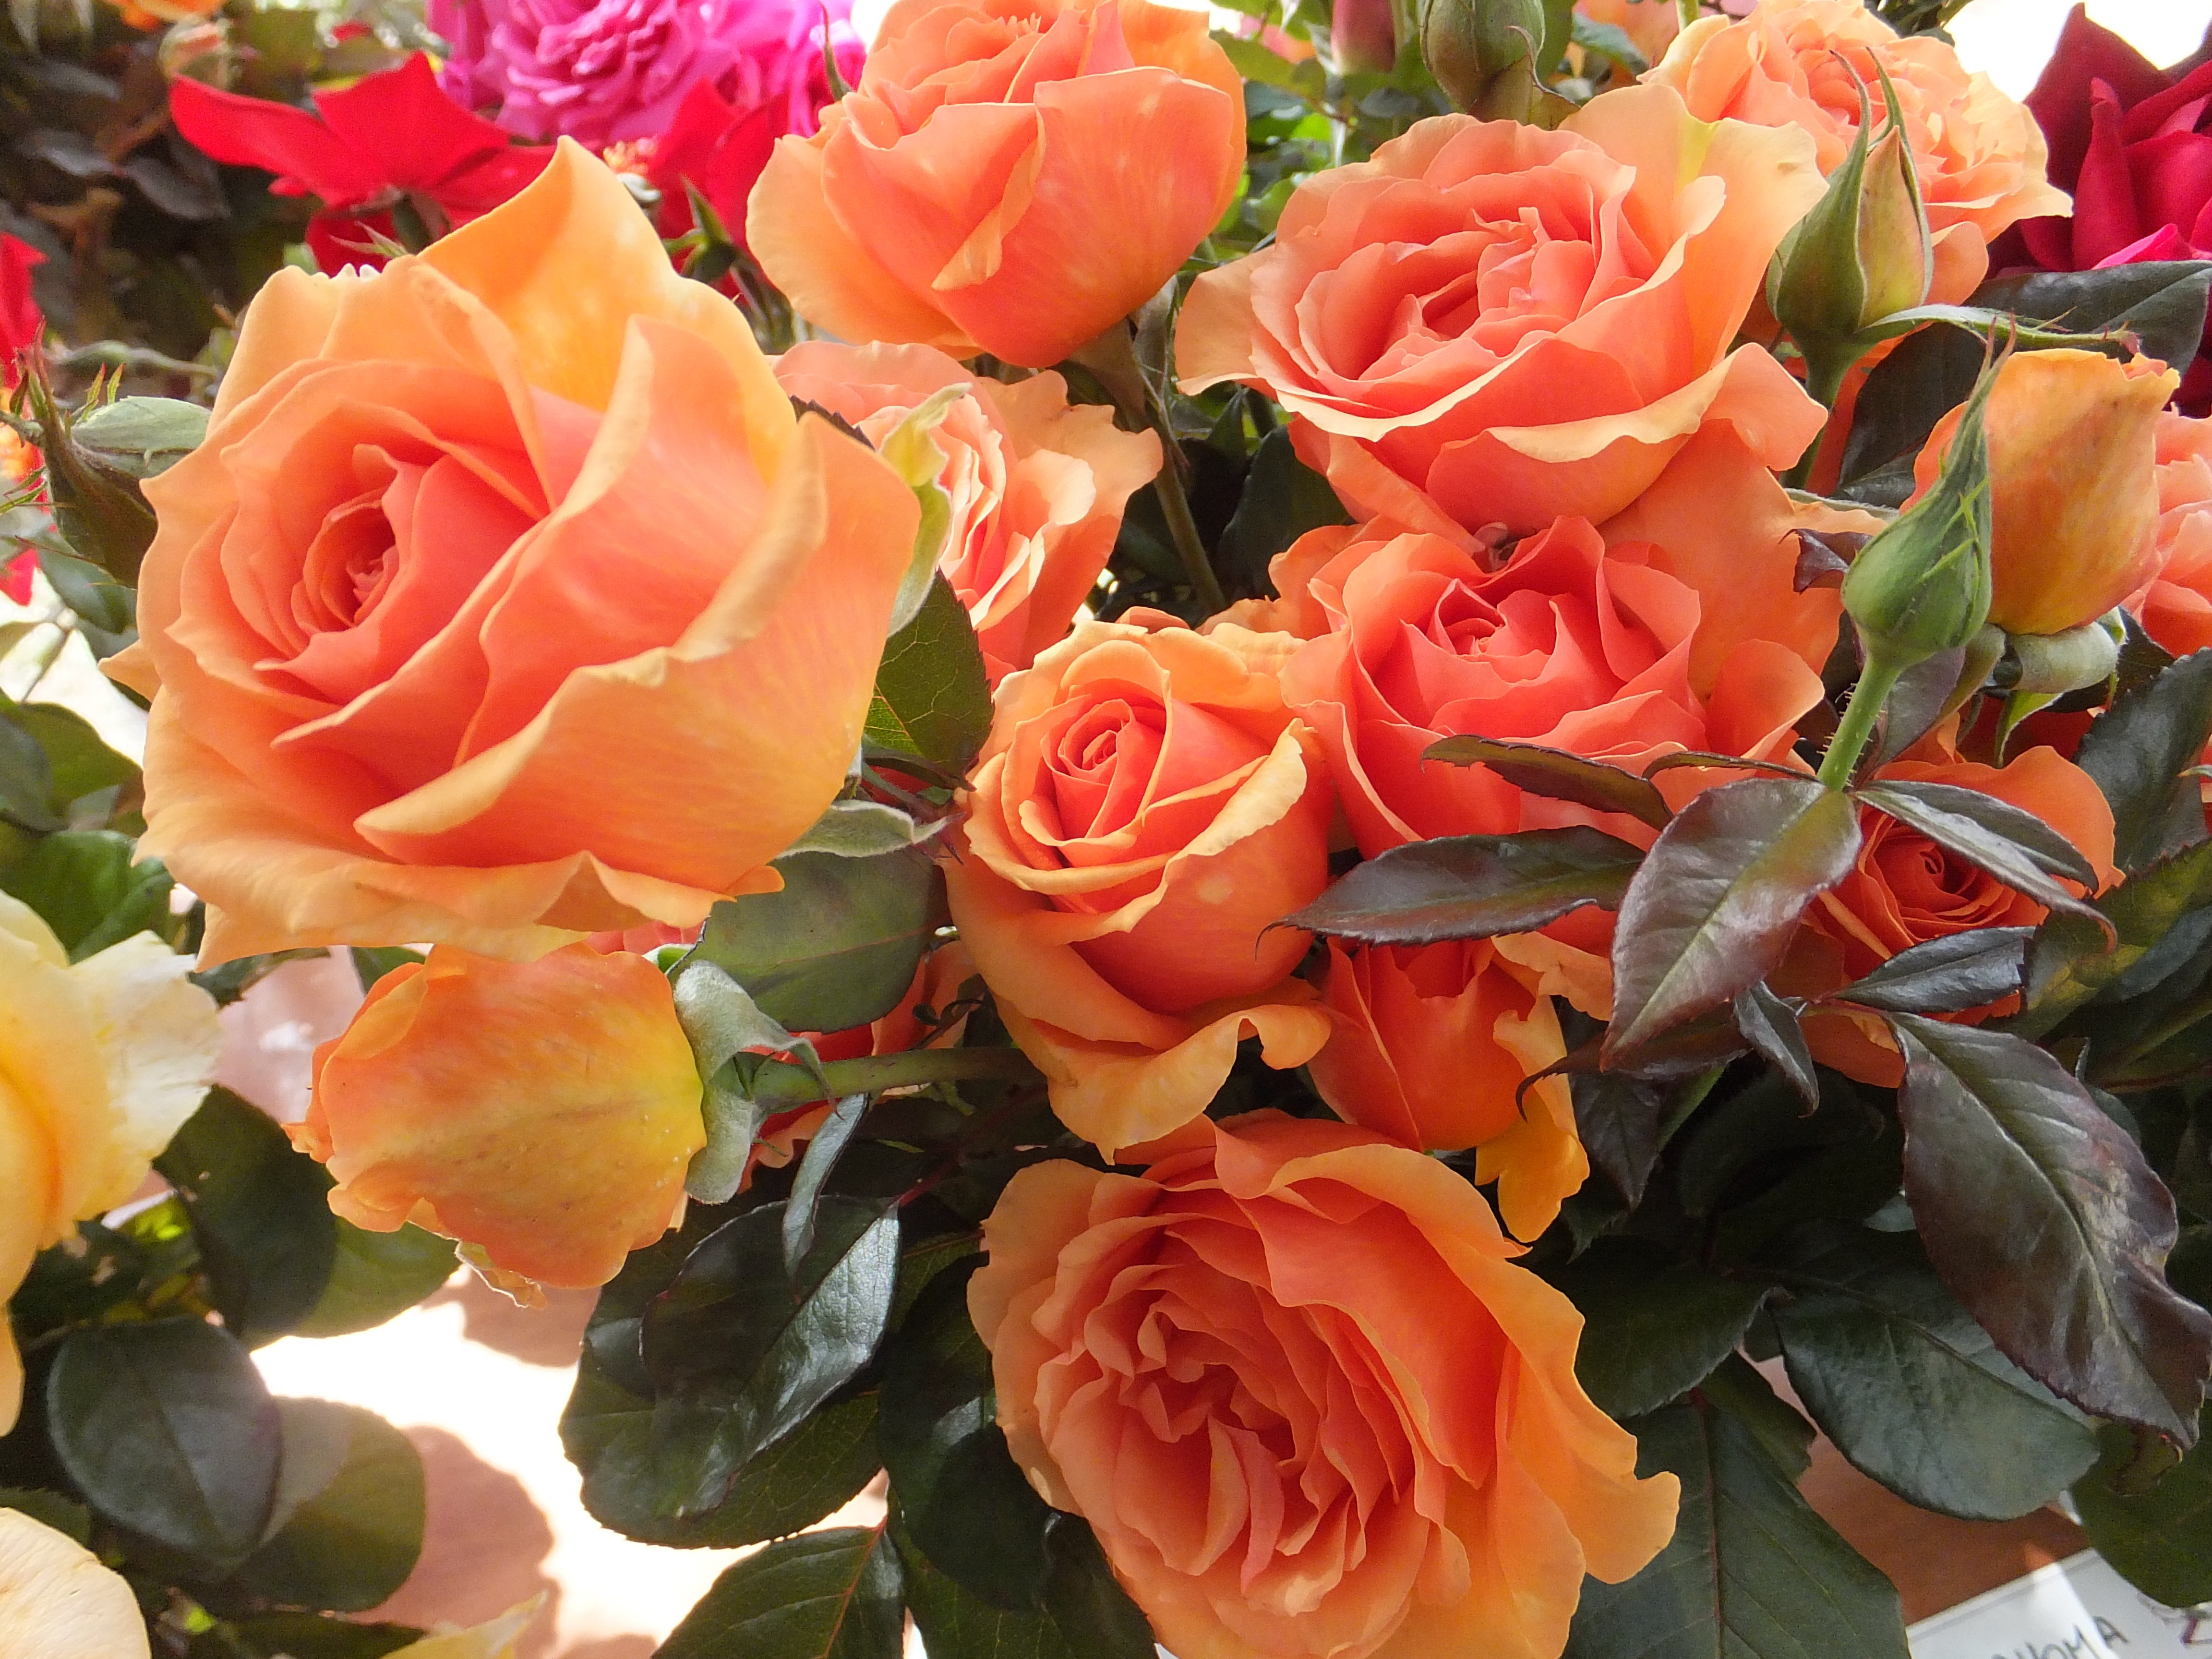 All About Roses Everything You Need To Know Vintage Story English Rose Flower Pink Ashram Is One Of The Most Perfectly Formed Orange Which Beautifully Matched By Stunning Dark Green Delightfully Healthy Foliage A Great